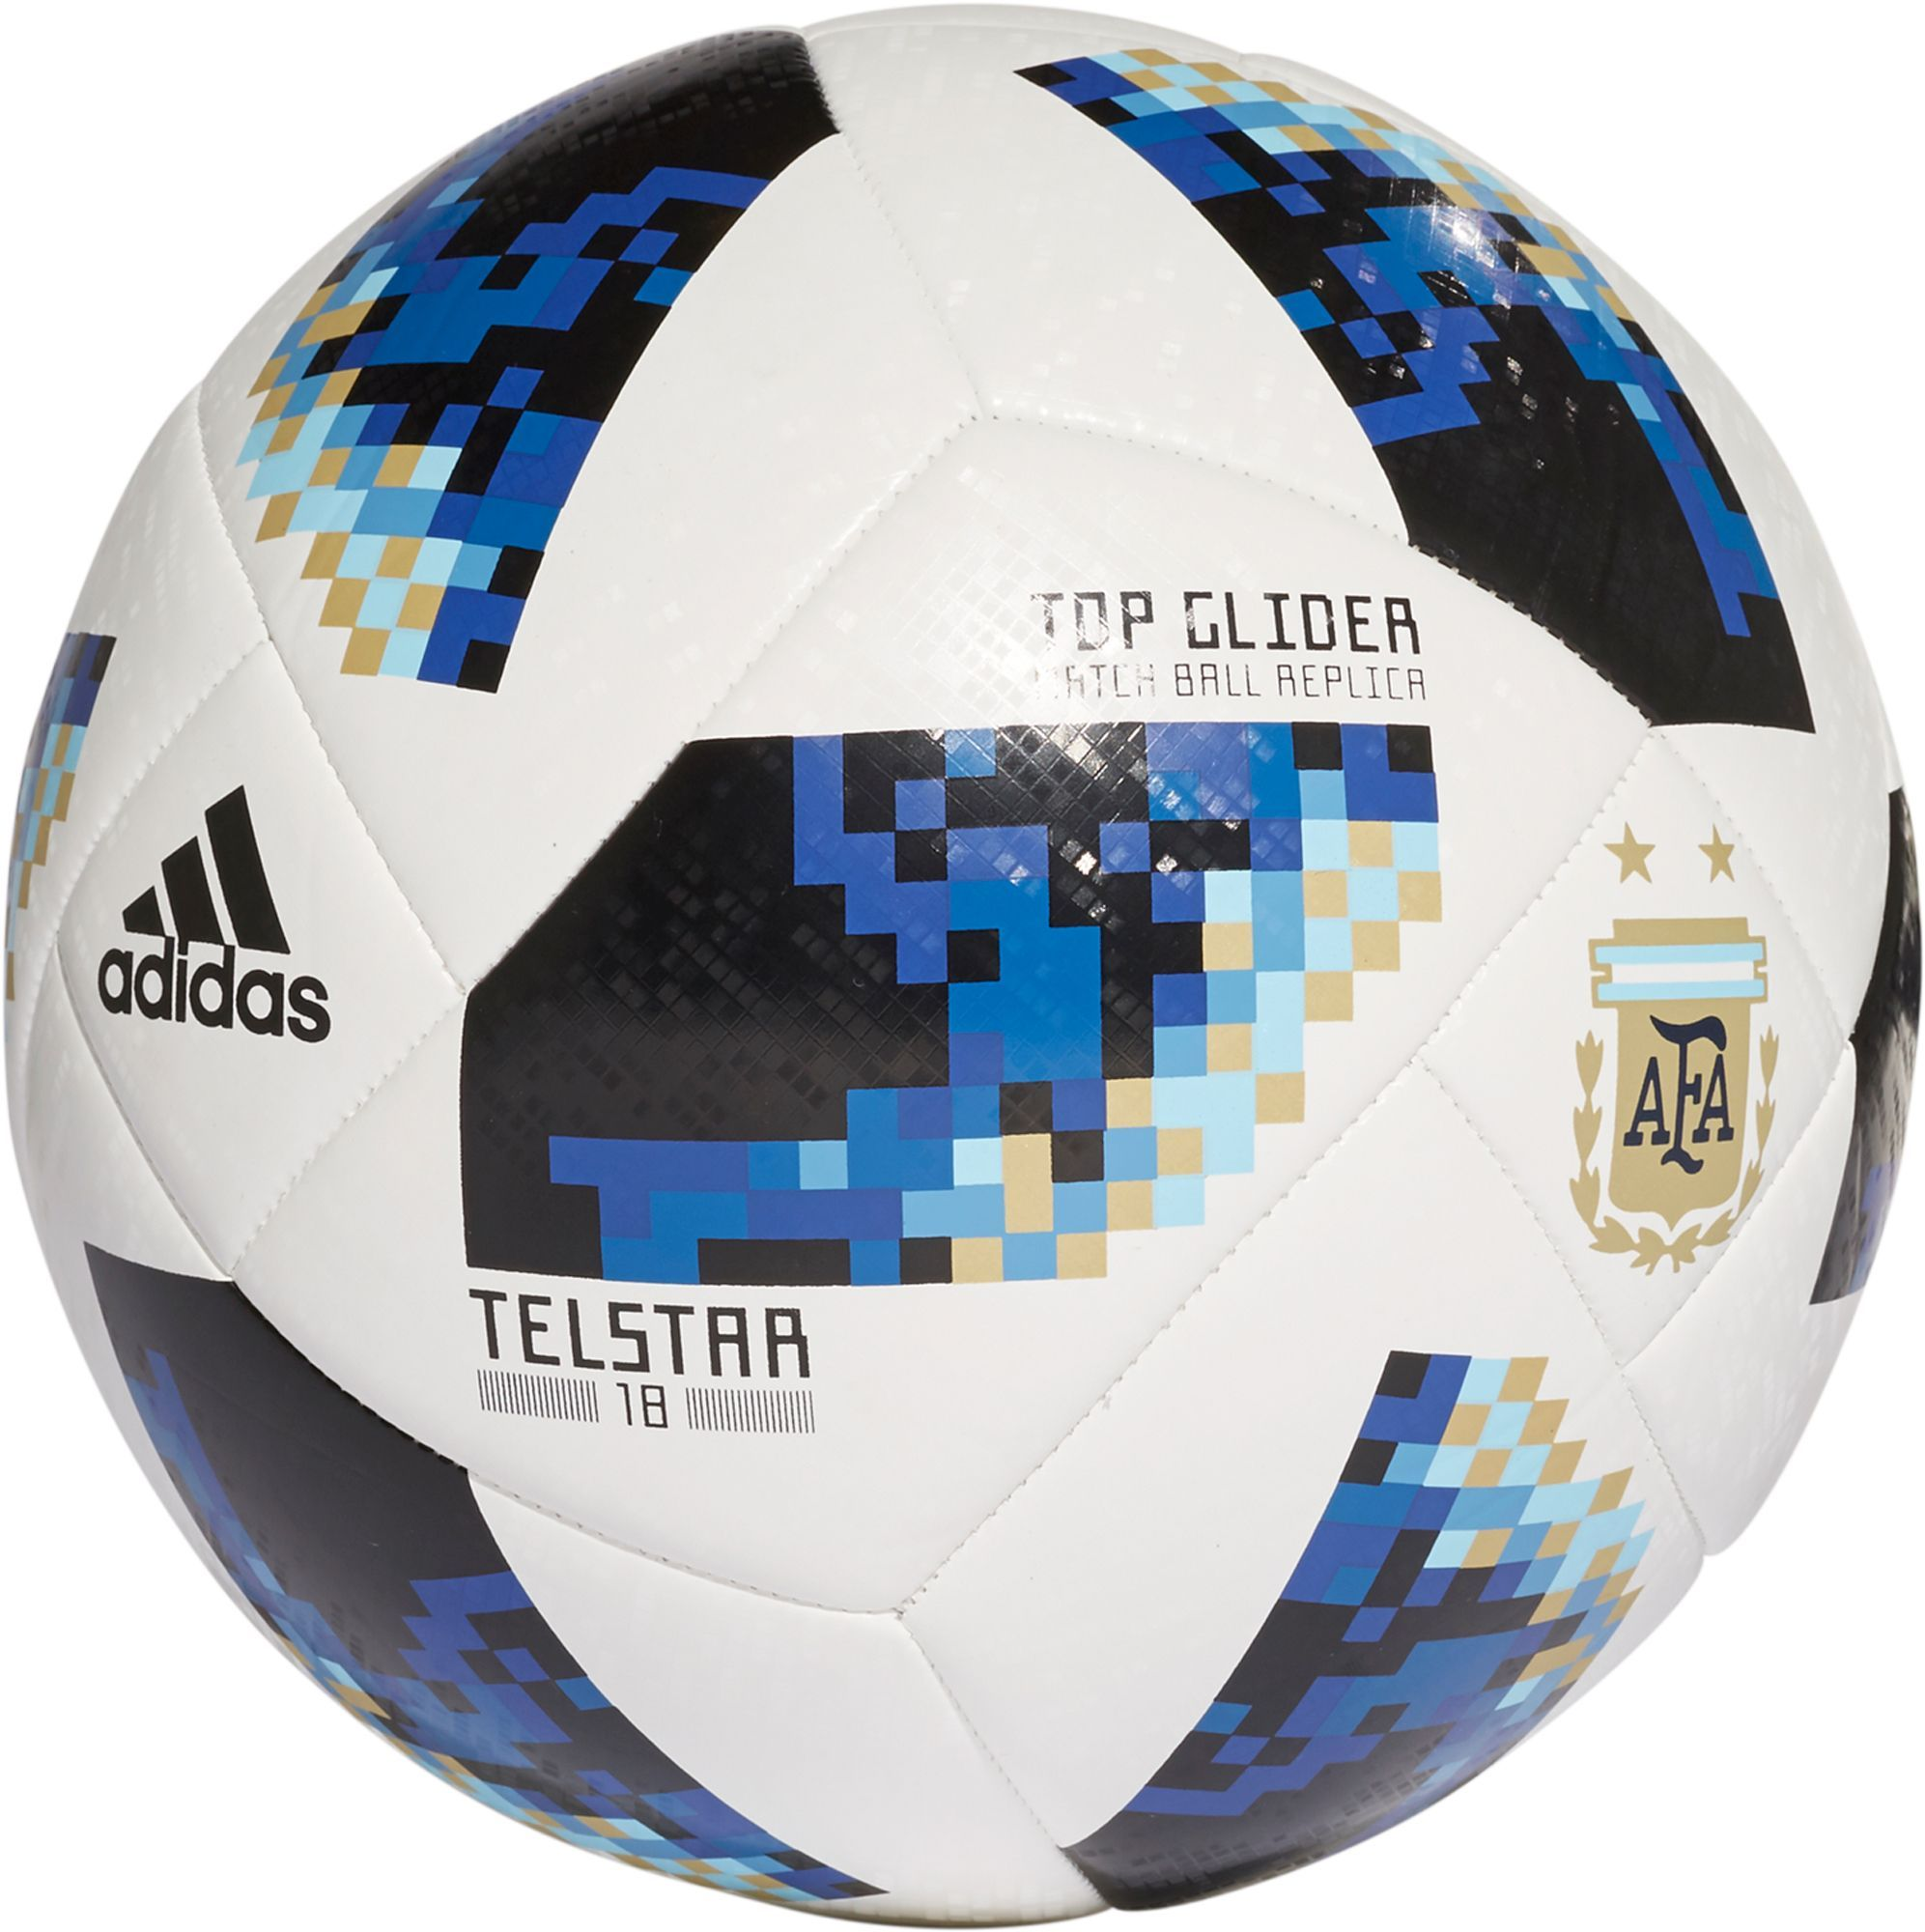 Adidas 2018 Fifa World Cup Russia Argentina Supporters Glider Soccer Ball White Soccer Ball Soccer Soccer Balls